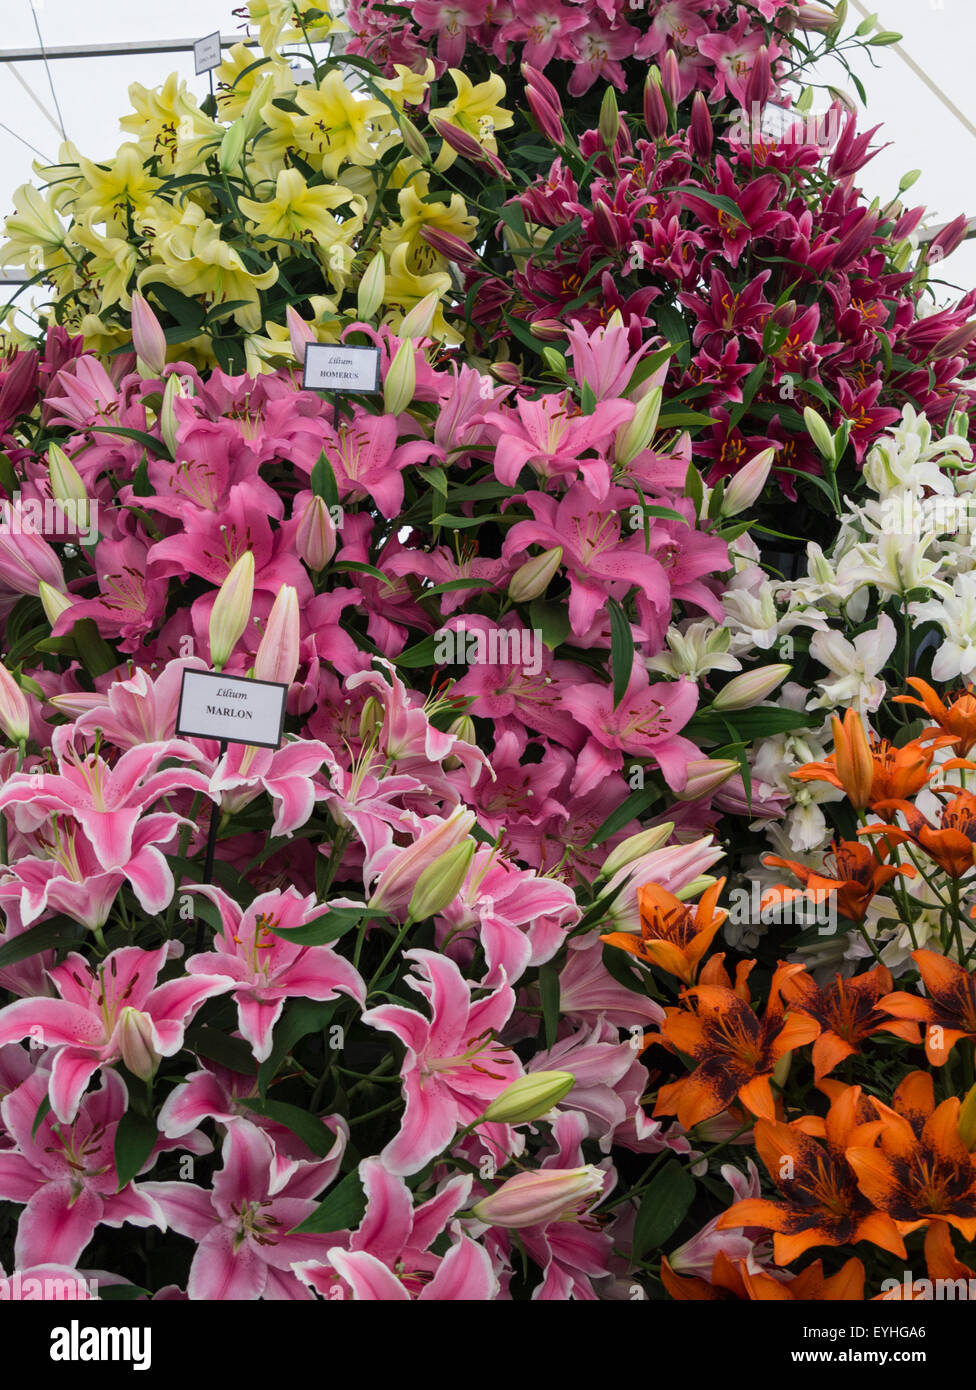 Different lilies stock photos different lilies stock images alamy display of different coloured lilies rhs cheshire flower show tatton park england stock image izmirmasajfo